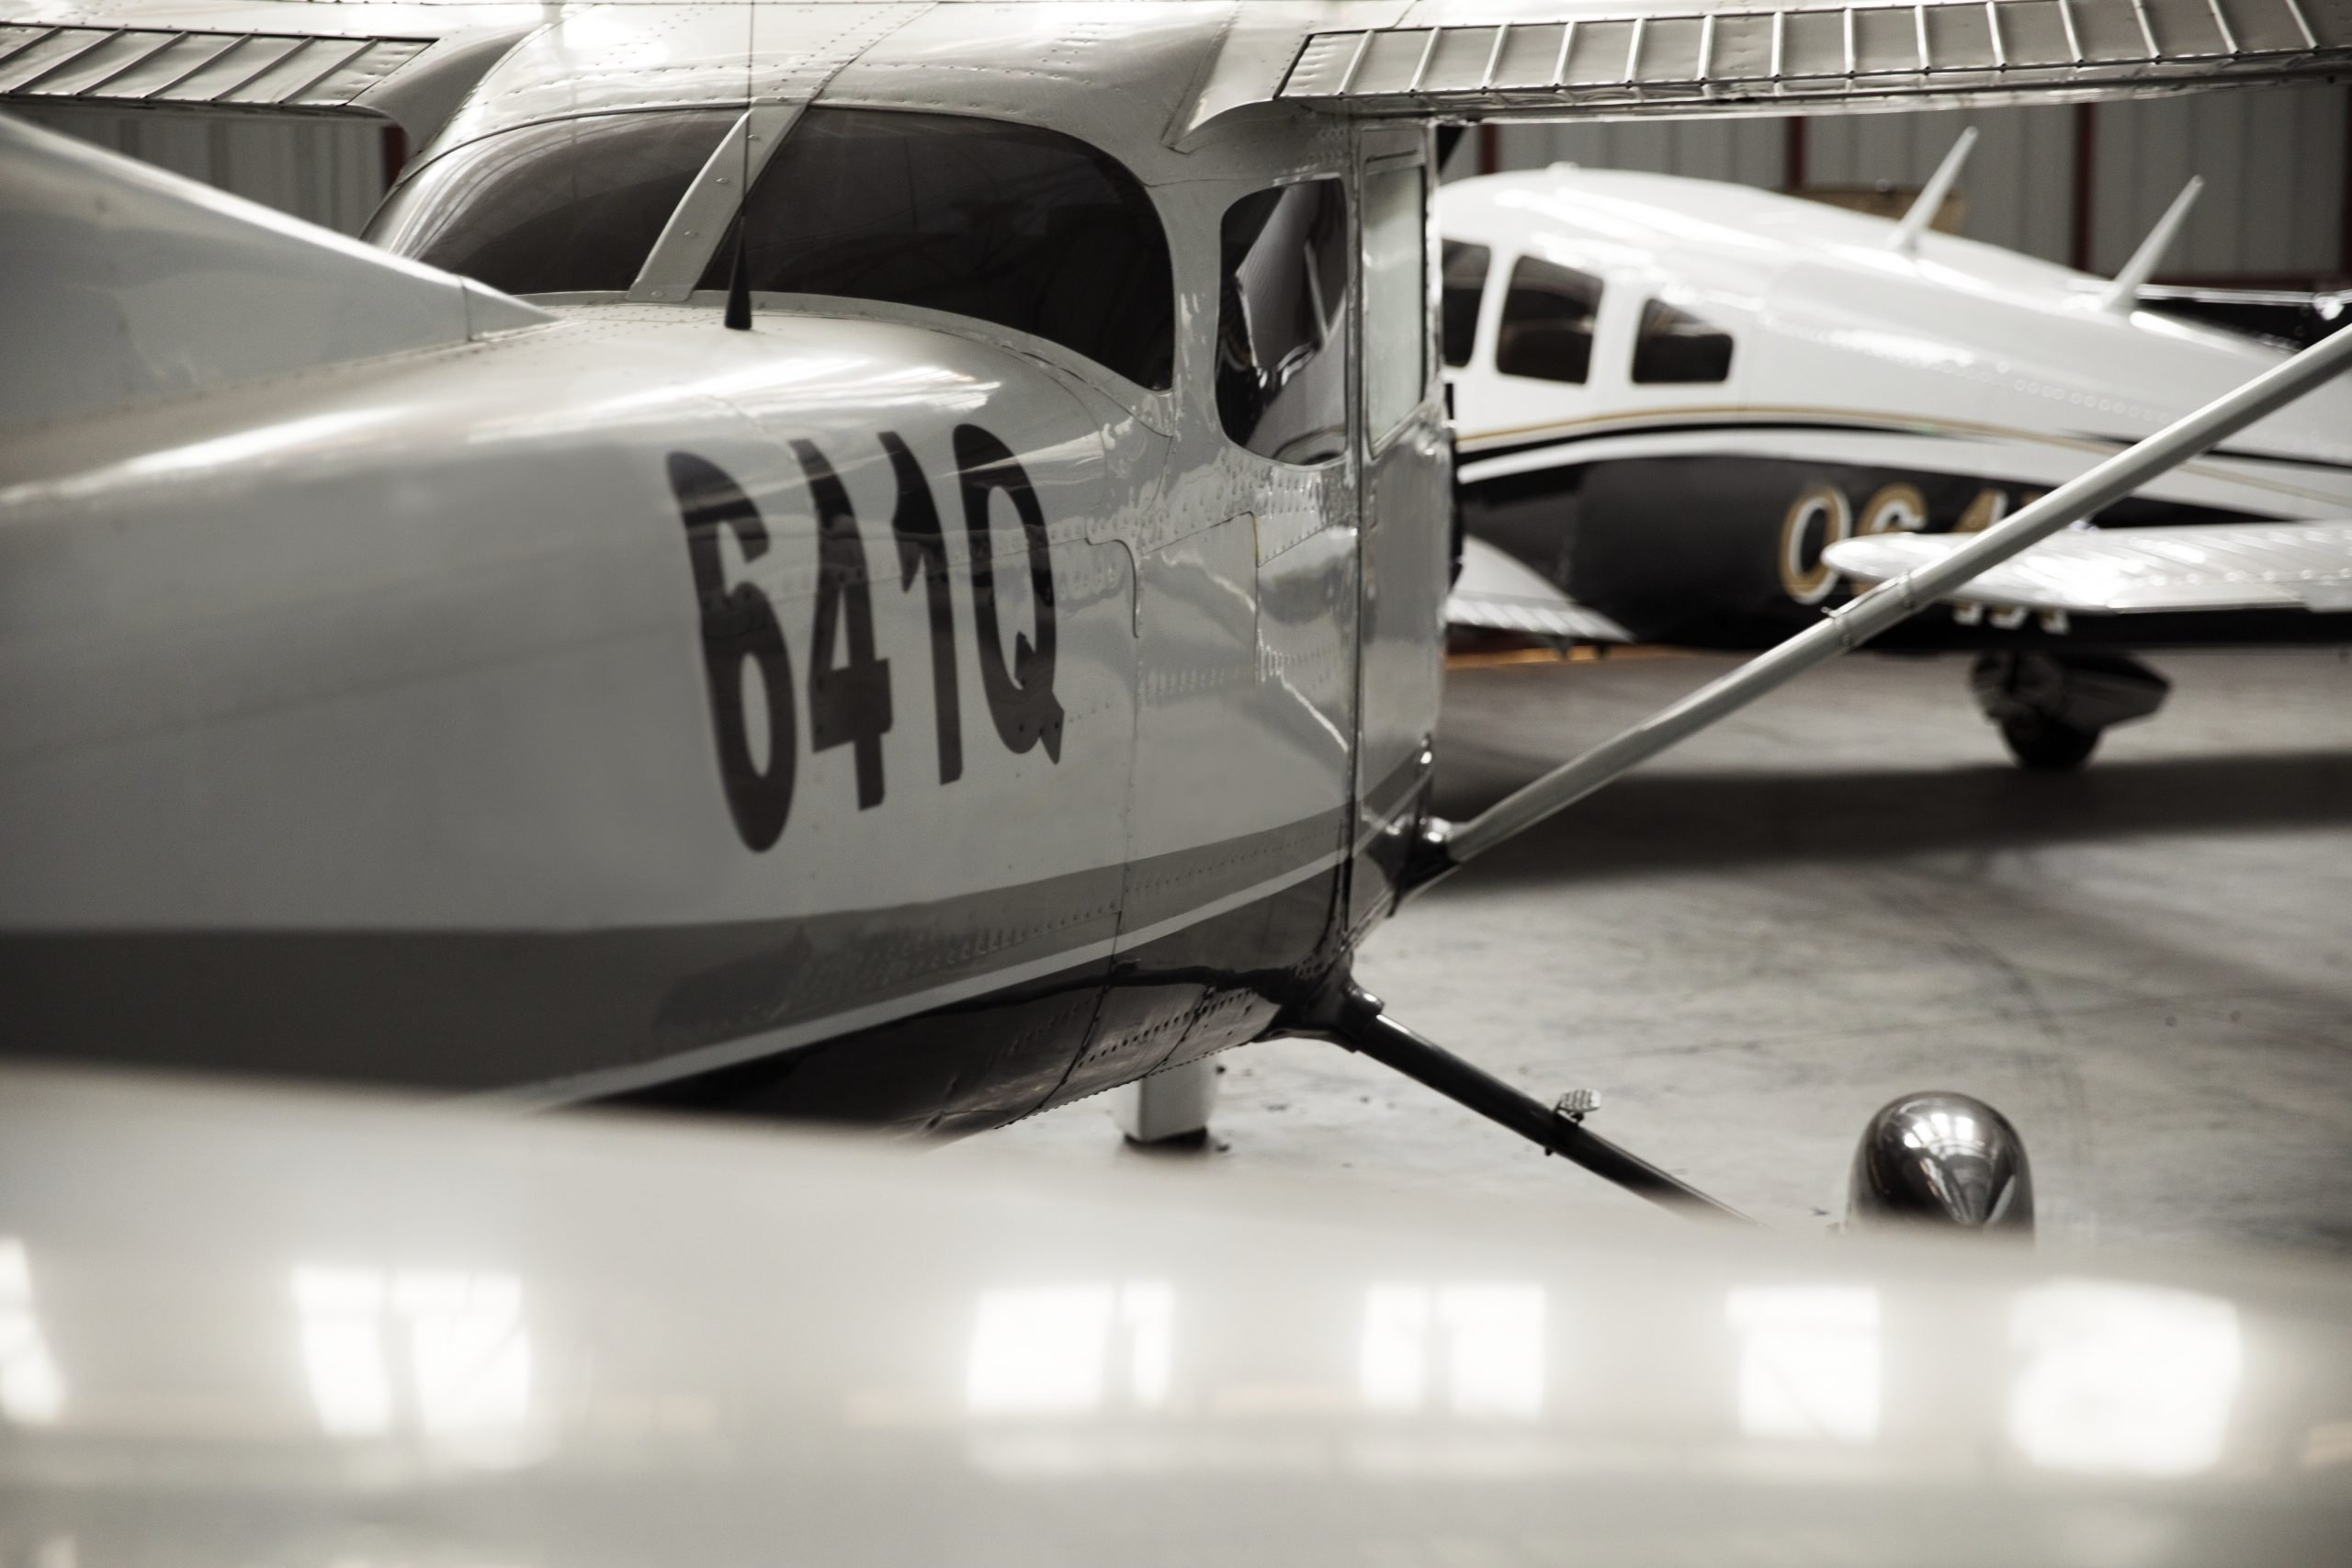 Front propellor plane parked in a metal building kit hangar